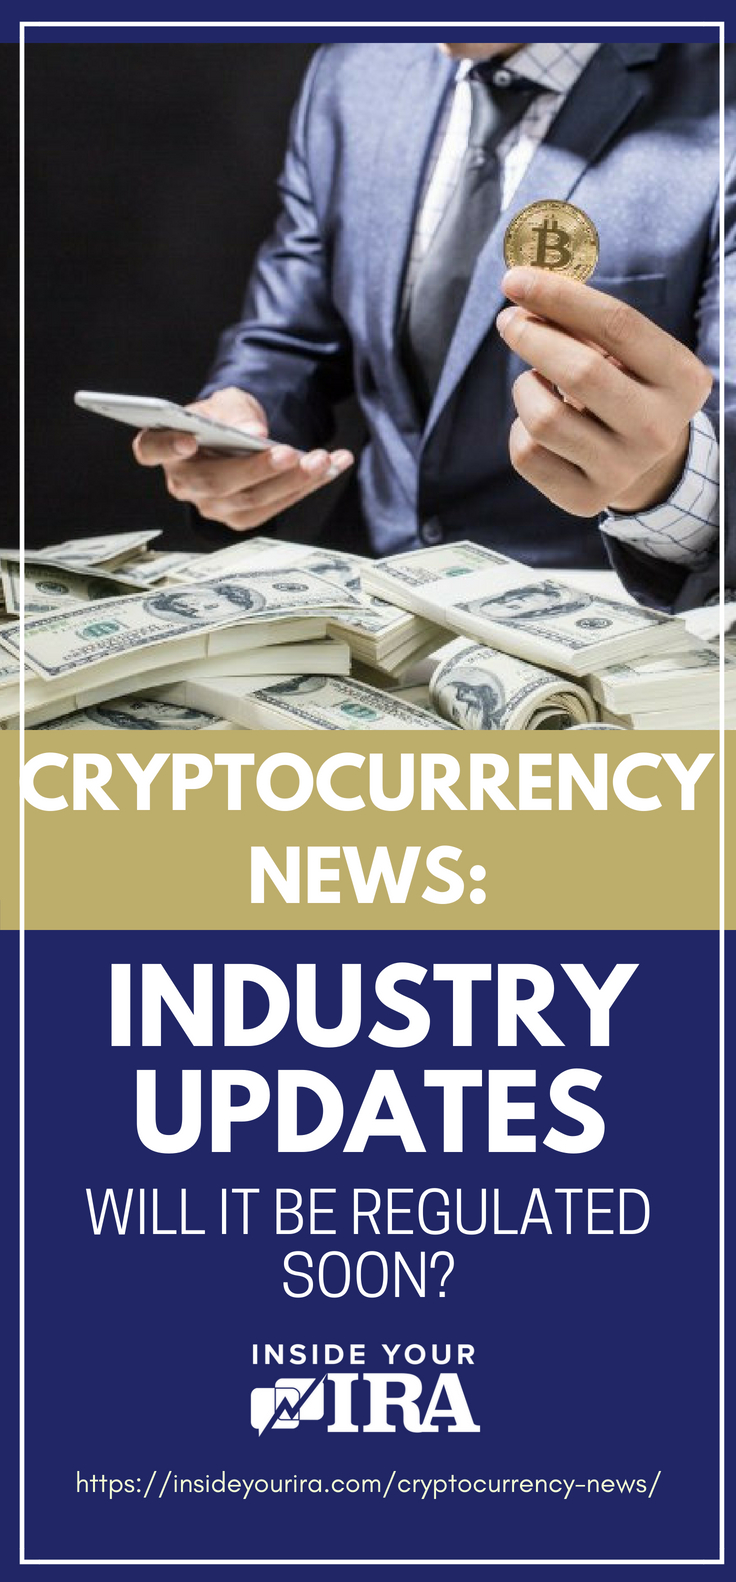 Pinterest Placard | Cryptocurrency News: Industry Updates | Will It Be Regulated Soon | Bitcoin | New York Stocks Exchange | Goldman Sachs | https://insideyourira.com/cryptocurrency-news/